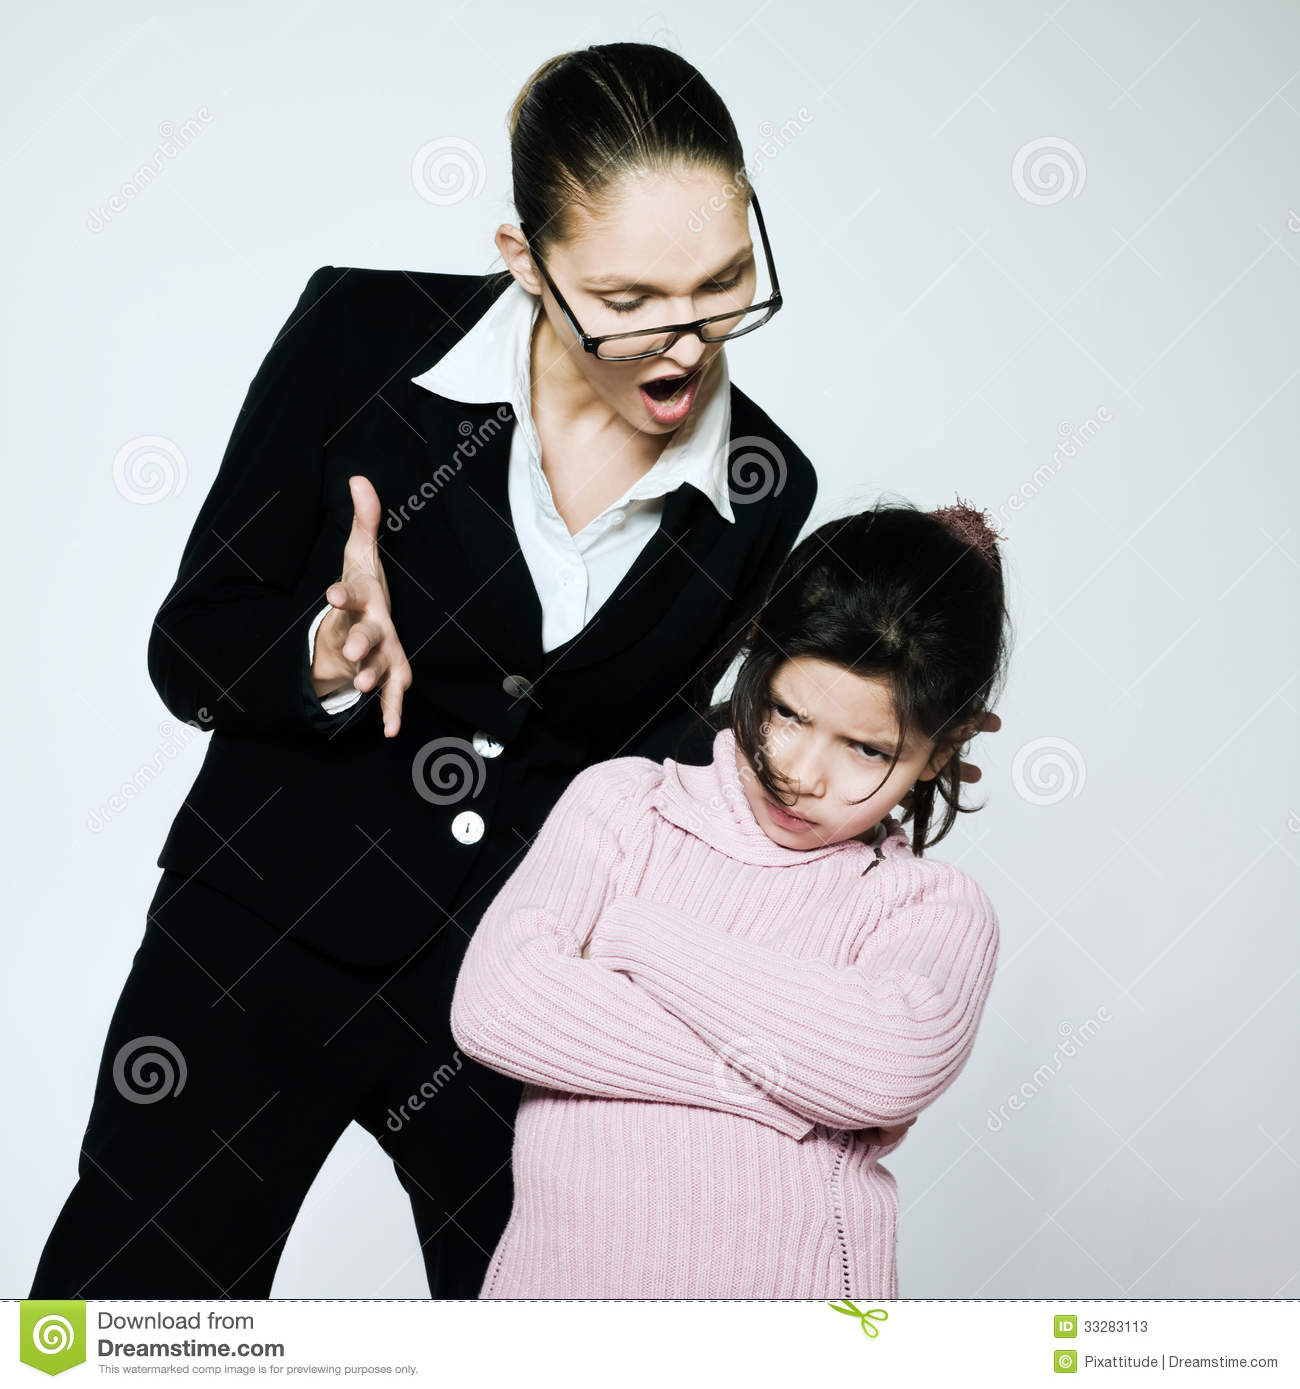 Woman Child Conflict Dispute Problems Stock Image - Image of